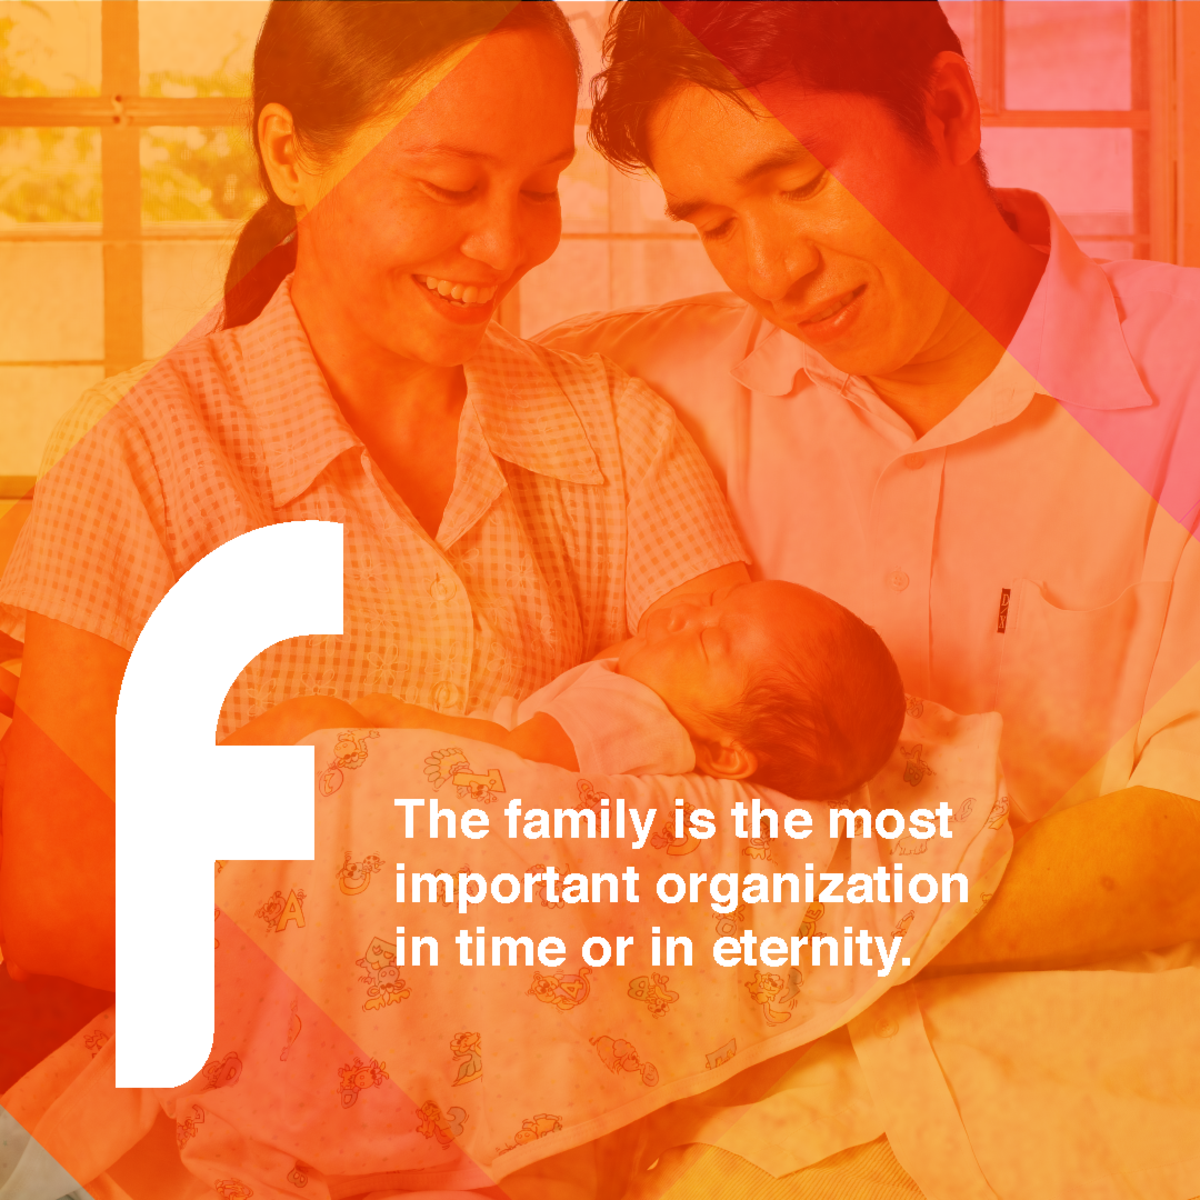 The family is the most important organization in time or in eternity.